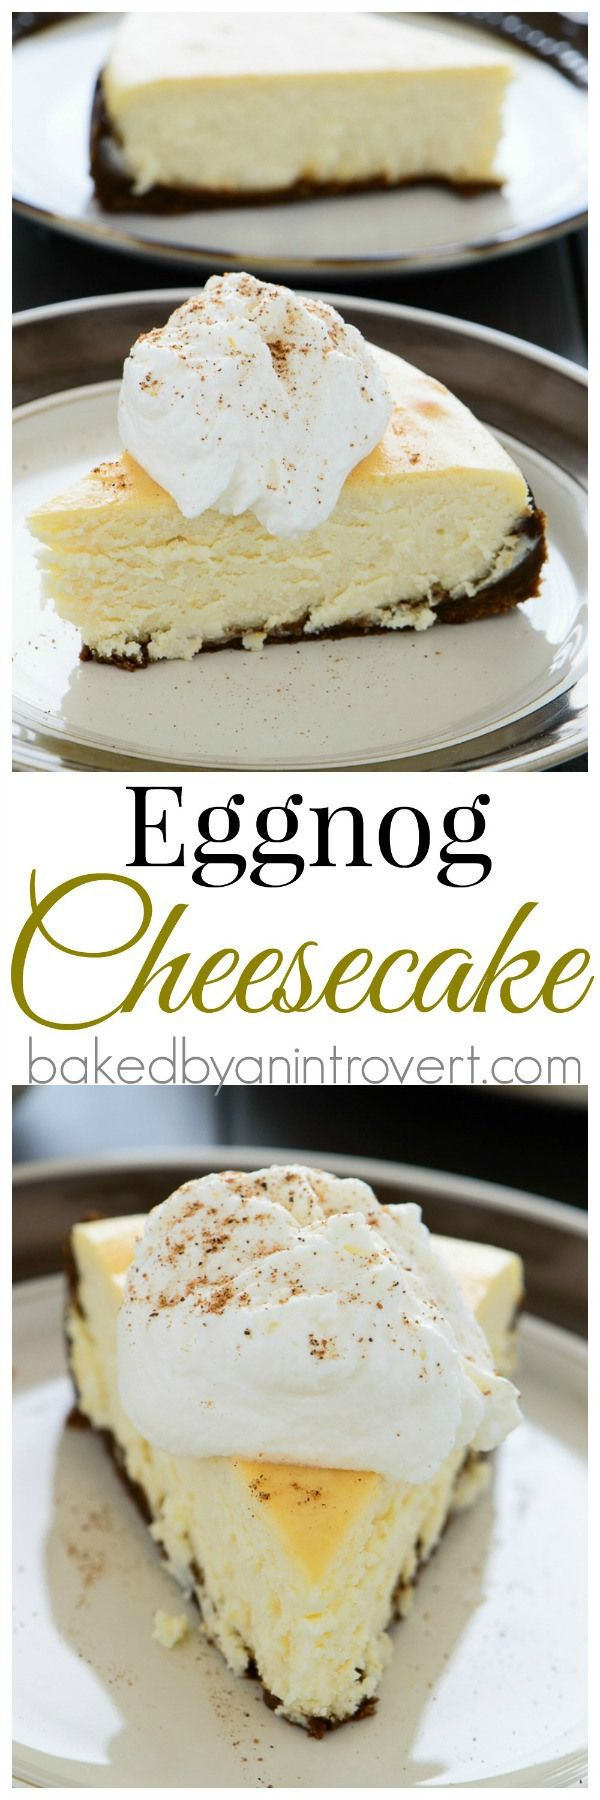 eggnog cheesecake on top of a gingersnap crust, topped with eggnog ...